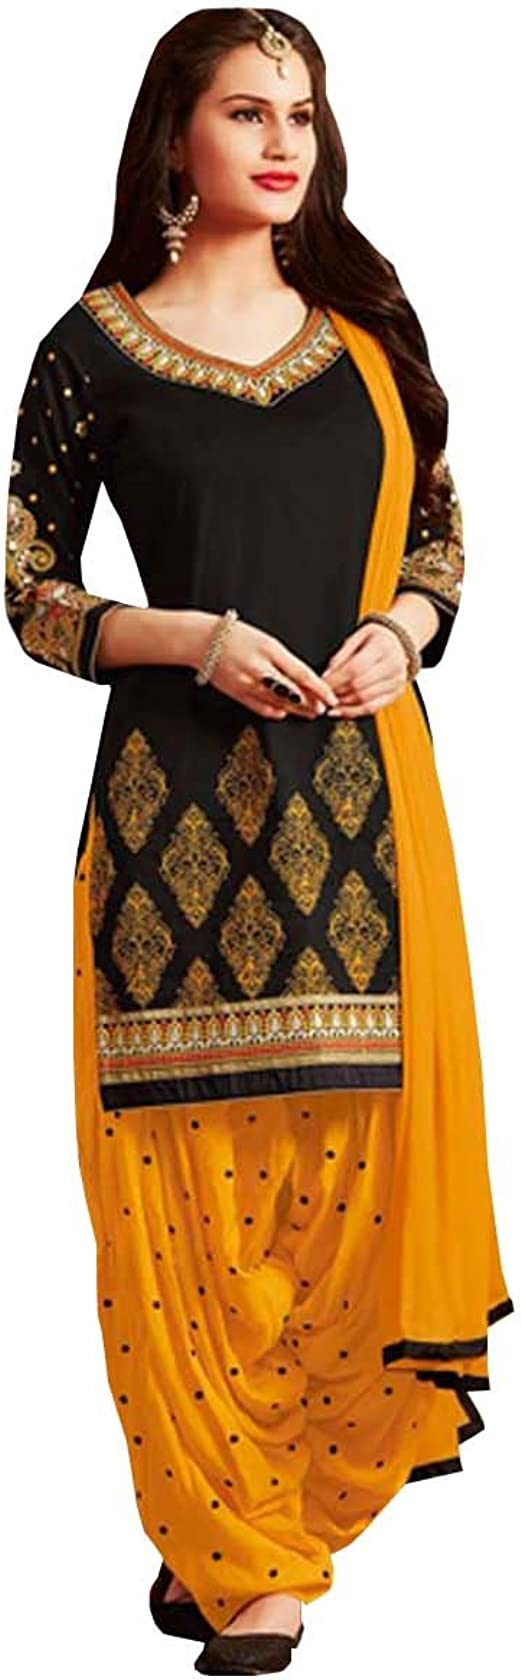 Amazon.com: Ready Made Patiala Salwar bordado traje de ...